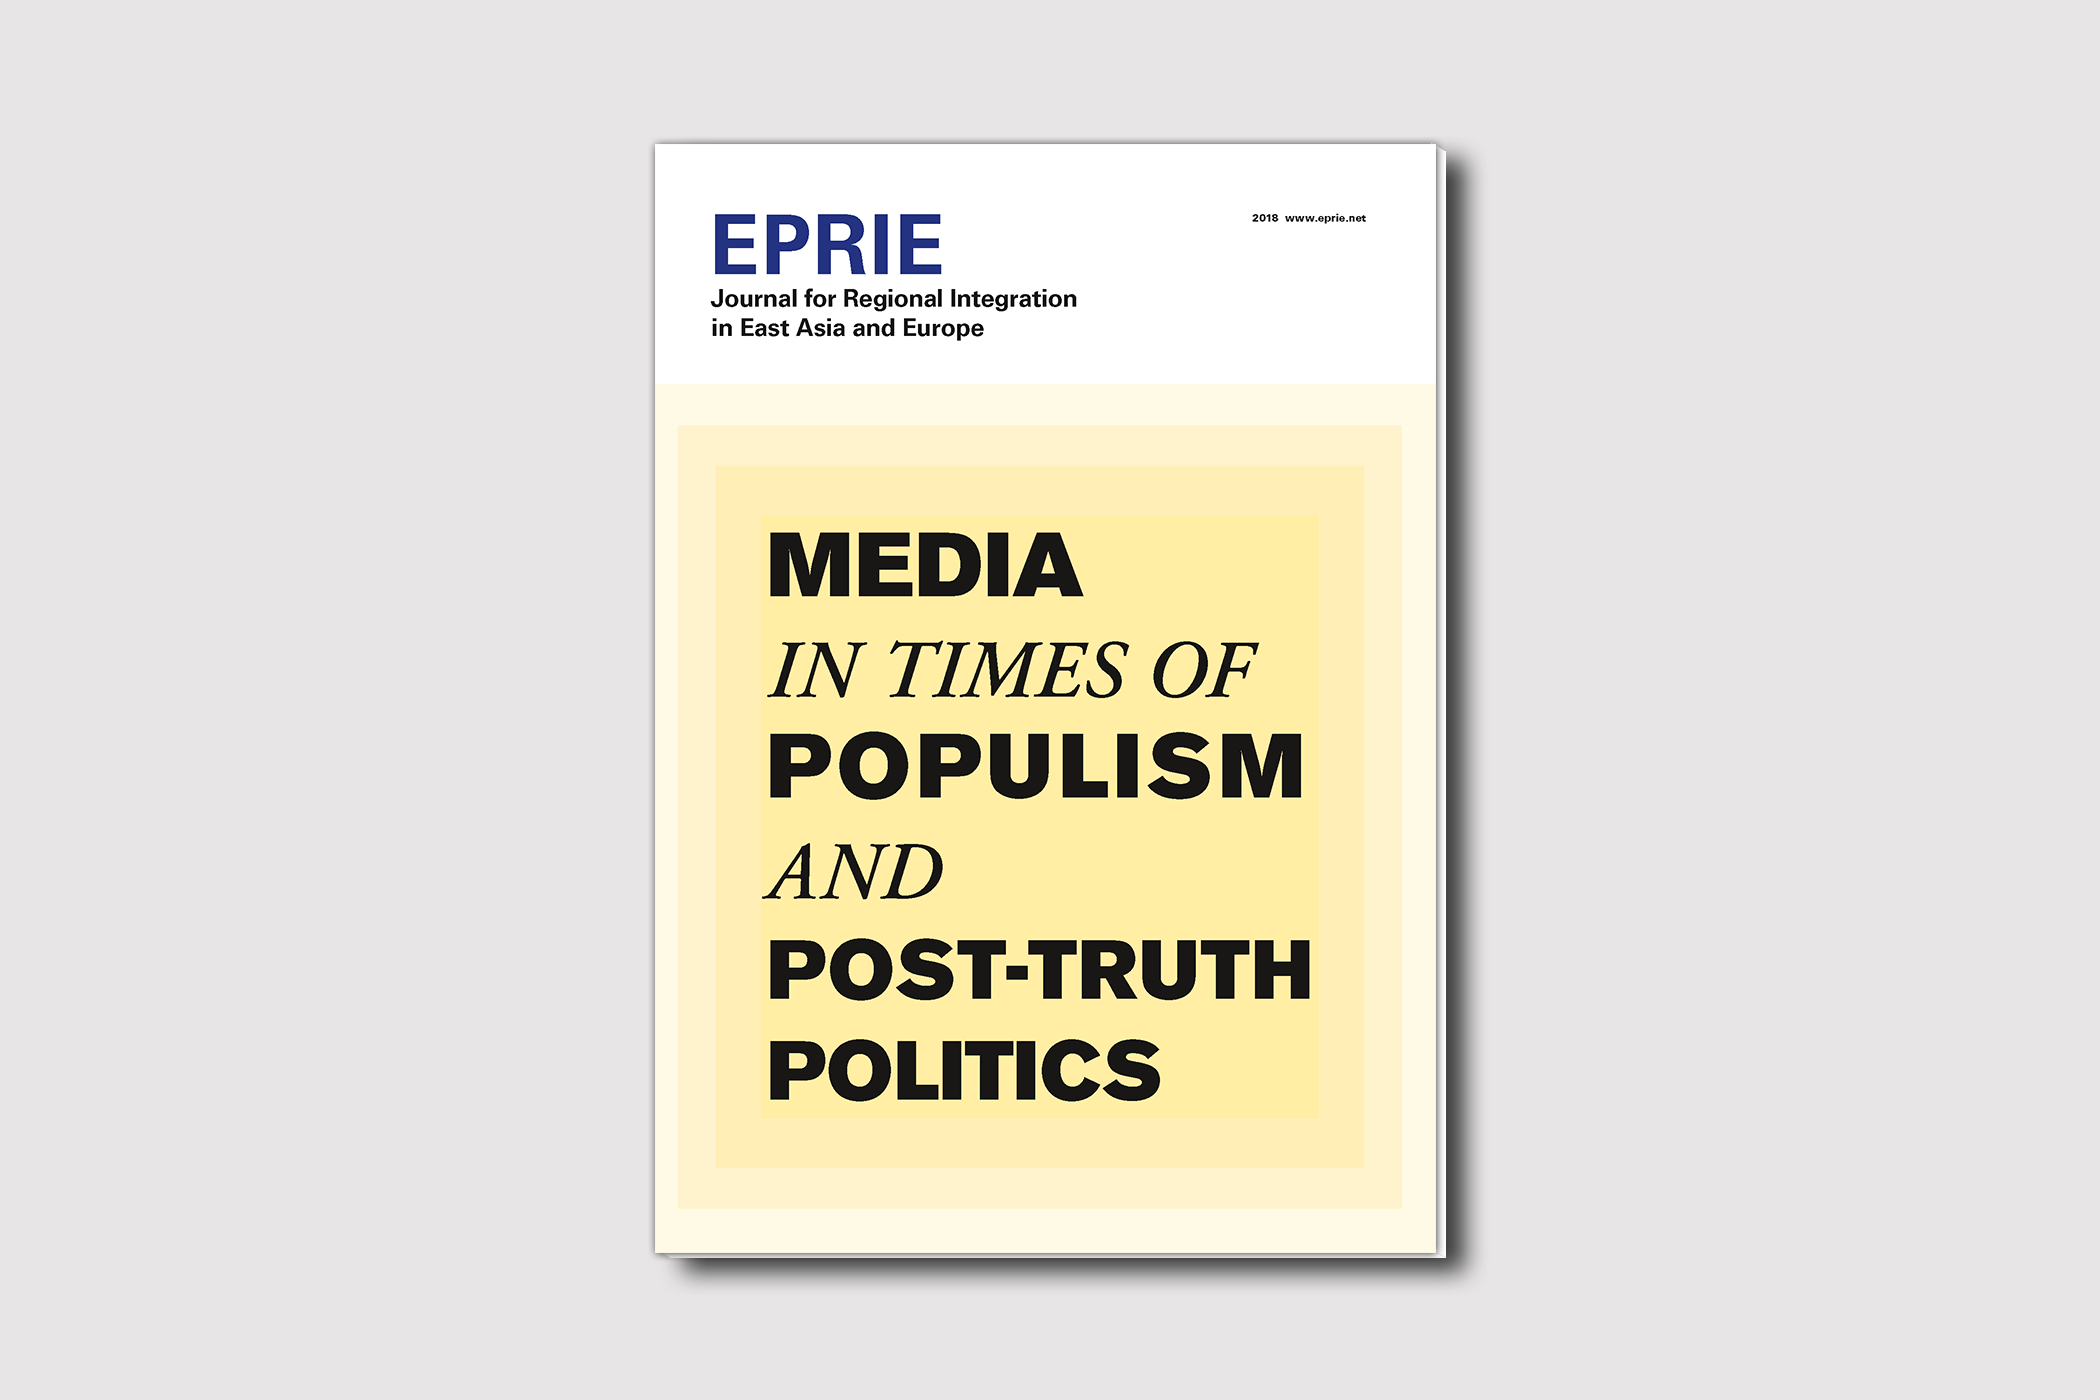 EPRIE Journal 2018